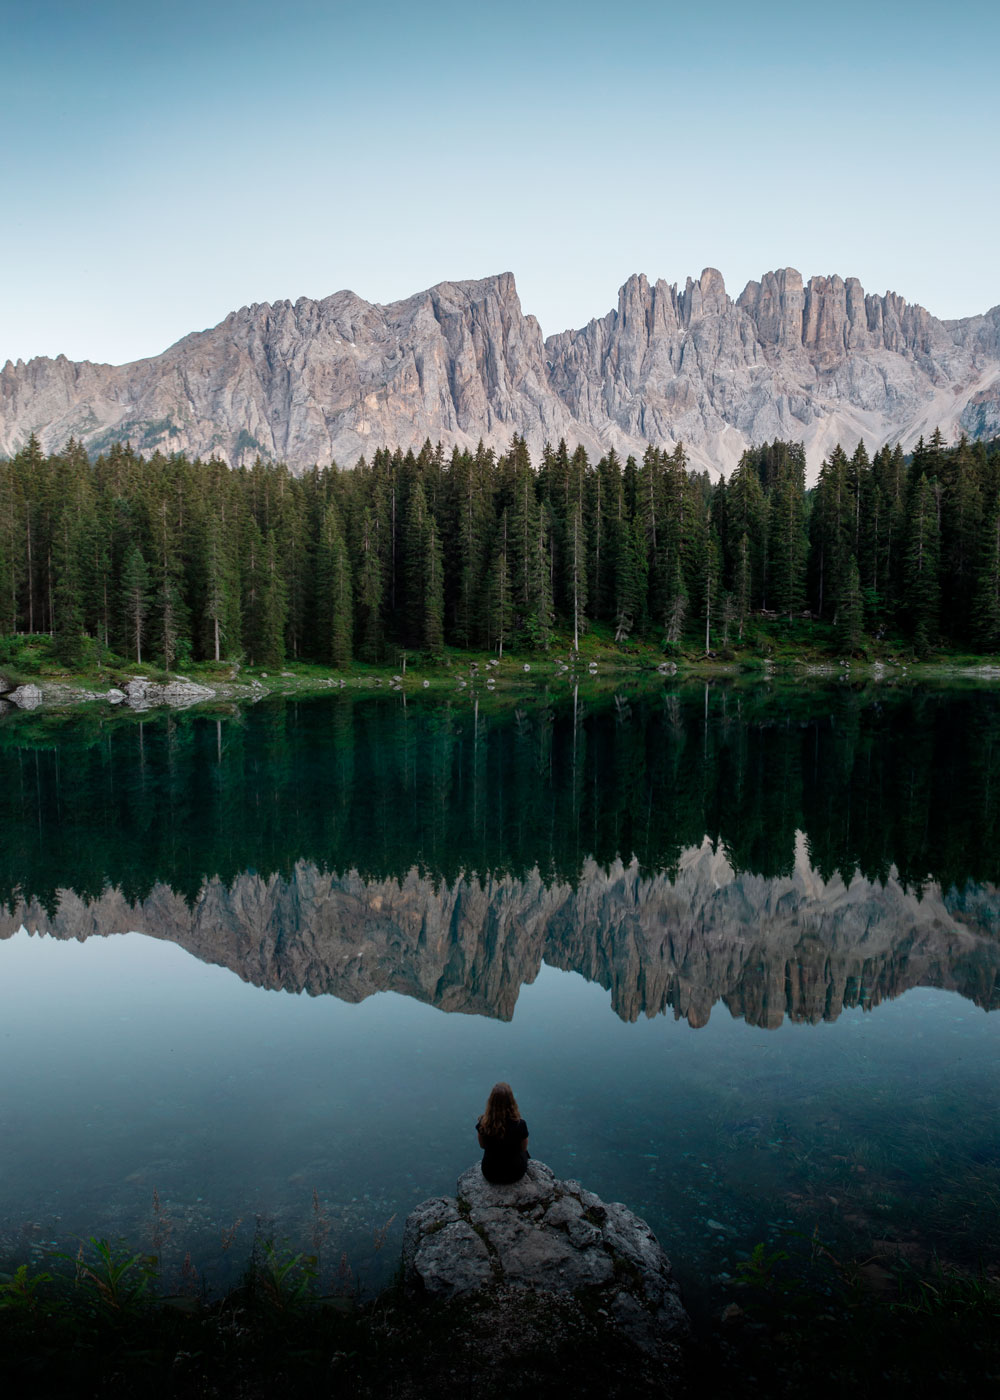 Dolomites itinary: The best photo locations